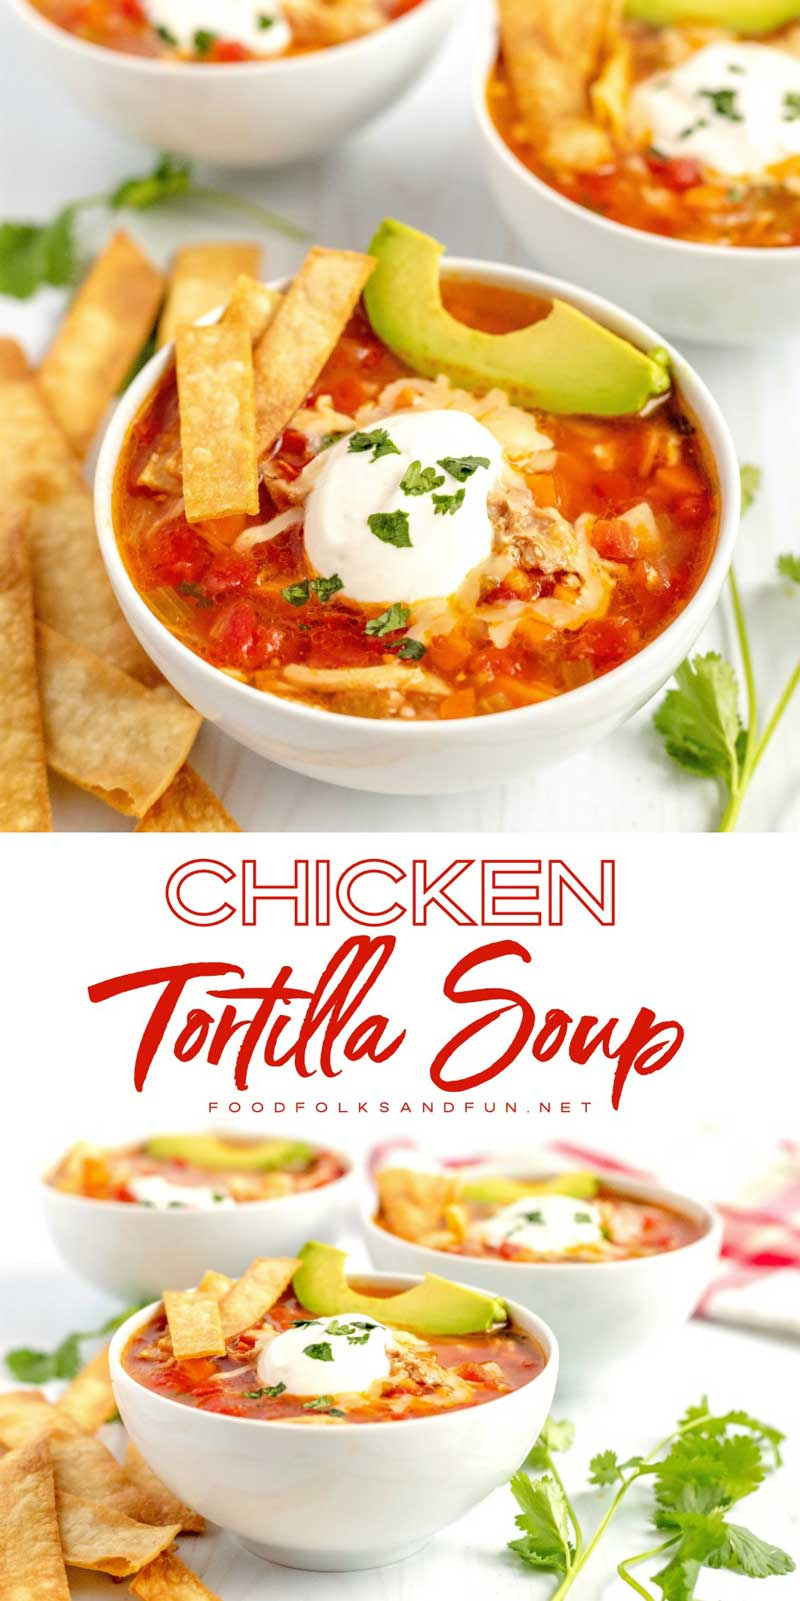 This Chicken Tortilla Soup is a delicious dinner that the entire family will love. It's full of veggies and sprinkled with the most delicious homemade tortilla strips. #chicken #soup #tortillas #dinner #easydinner #foodfolksandfun via @foodfolksandfun